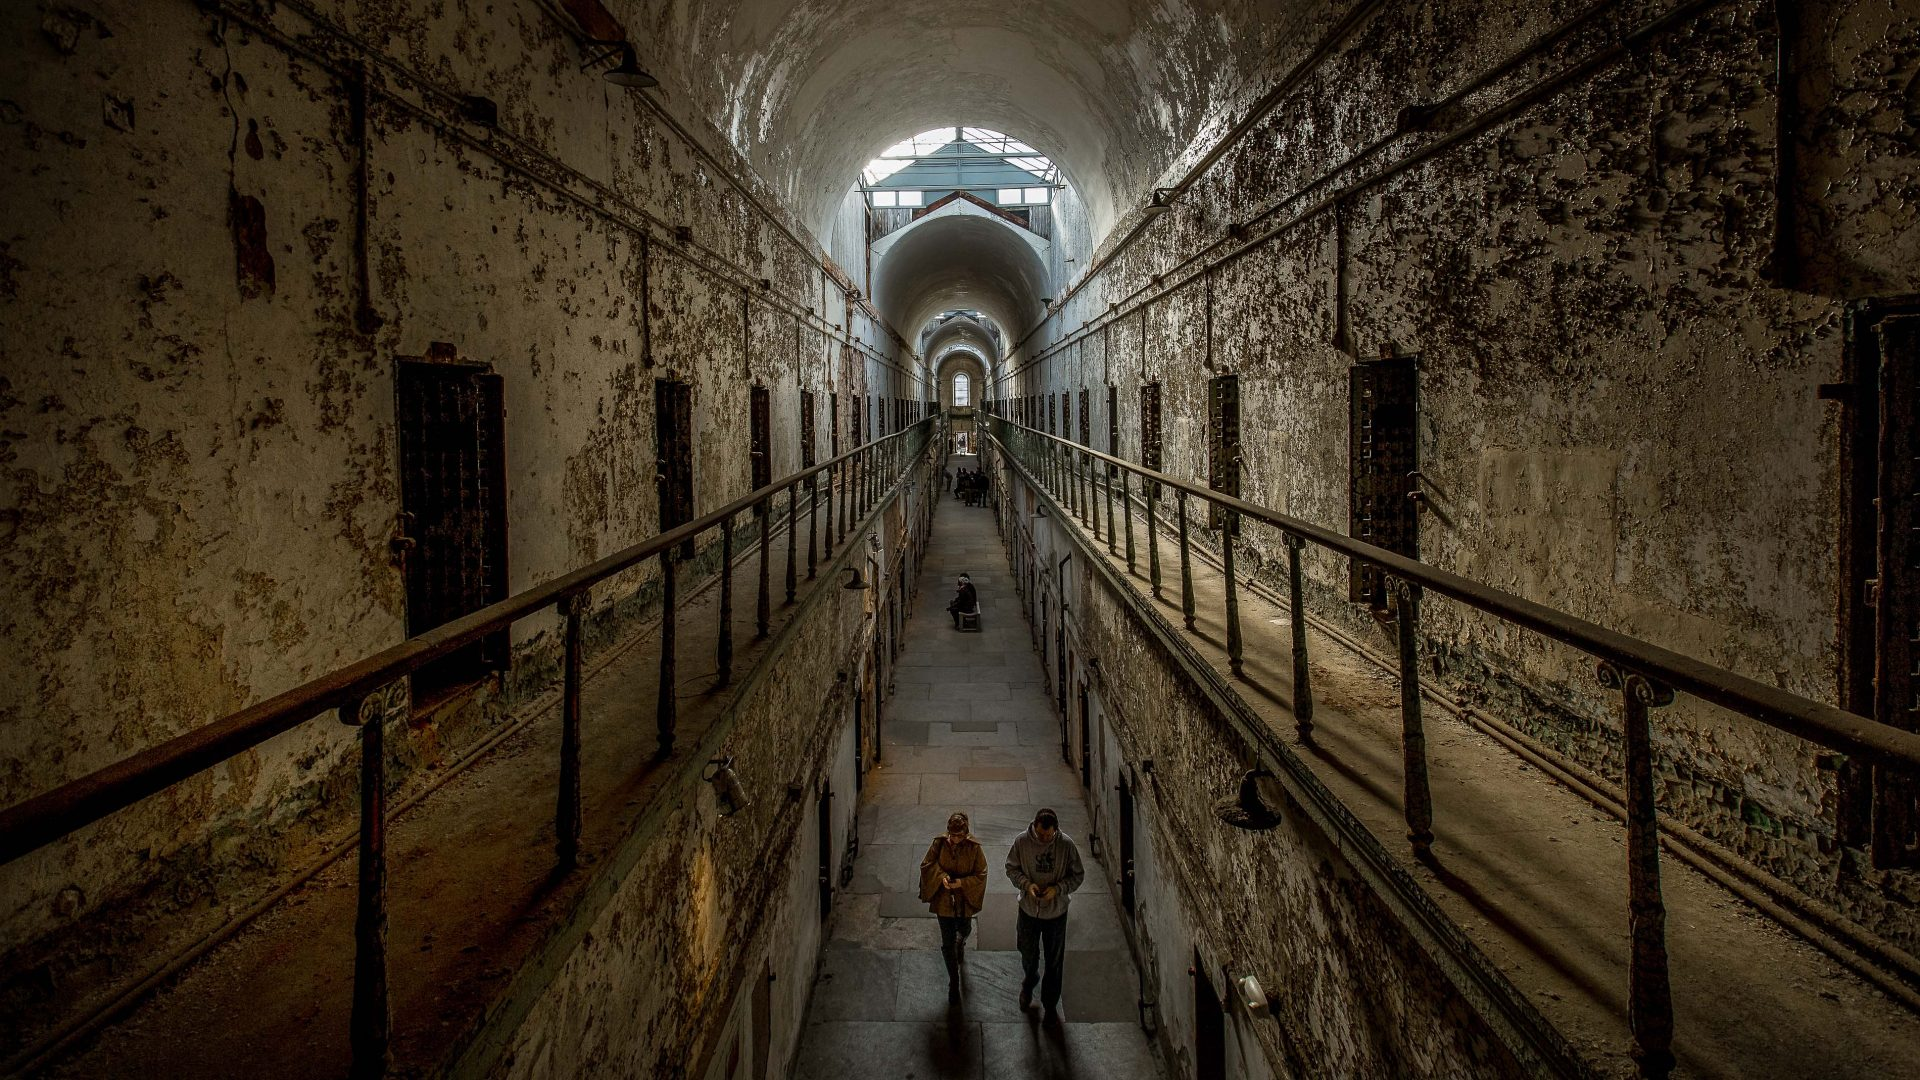 Inside America's most historic (and haunted) prison